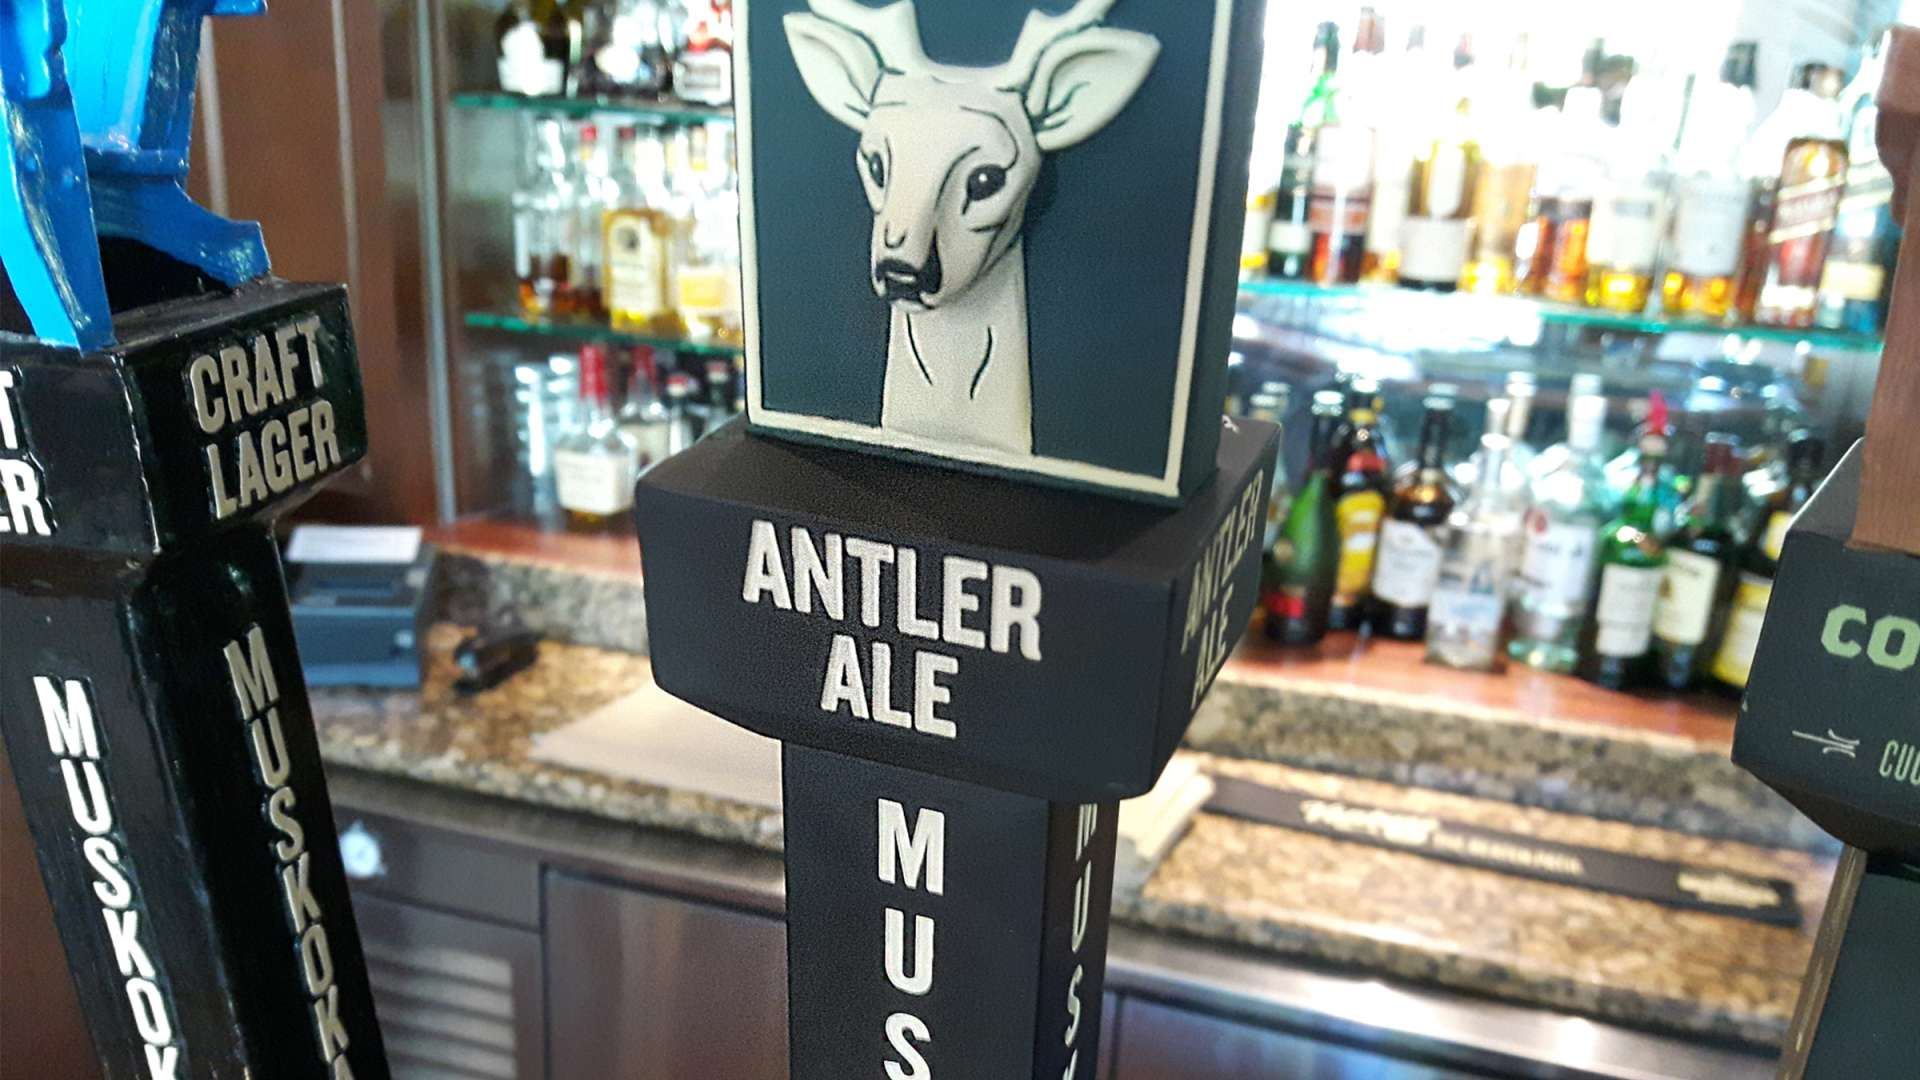 Antler Ale, our new house craft beer developed in partnership with Muskoka Brewery, is the perfect brew for summer days in Muskoka.